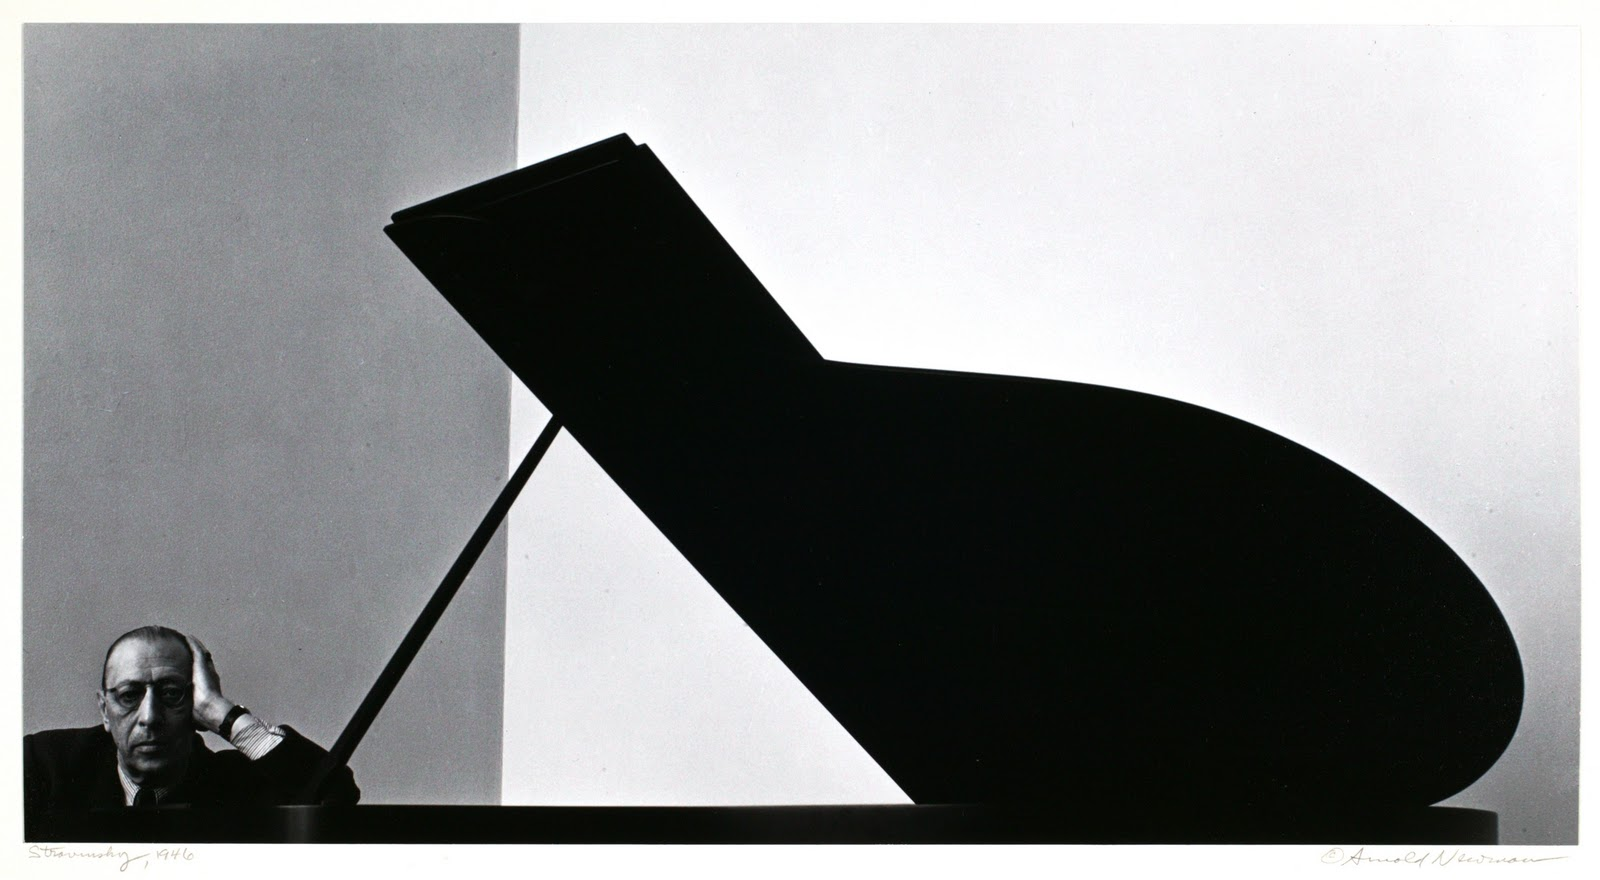 Arnold Newman Photography Style Images & Pictures - Becuo